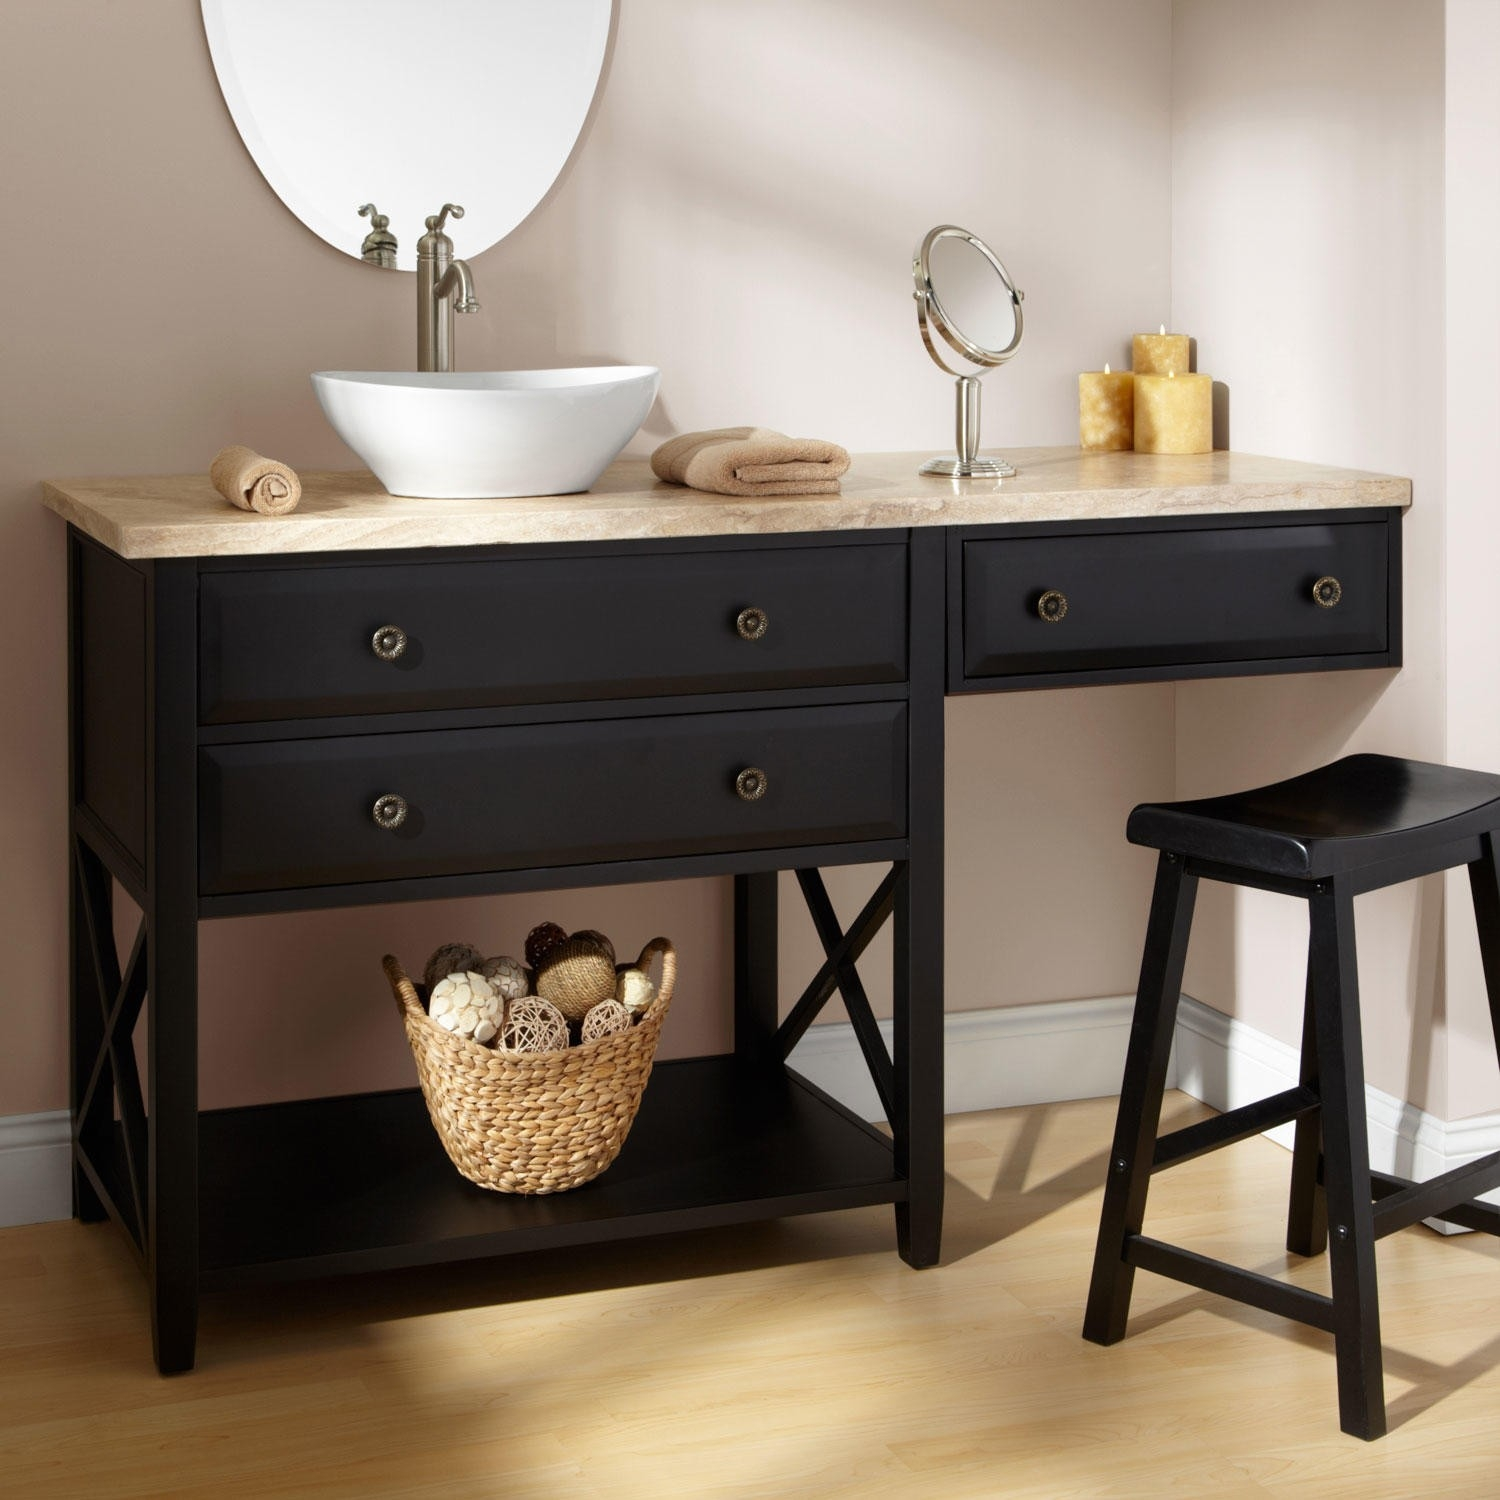 Small Bathroom Vanity With Makeup Area